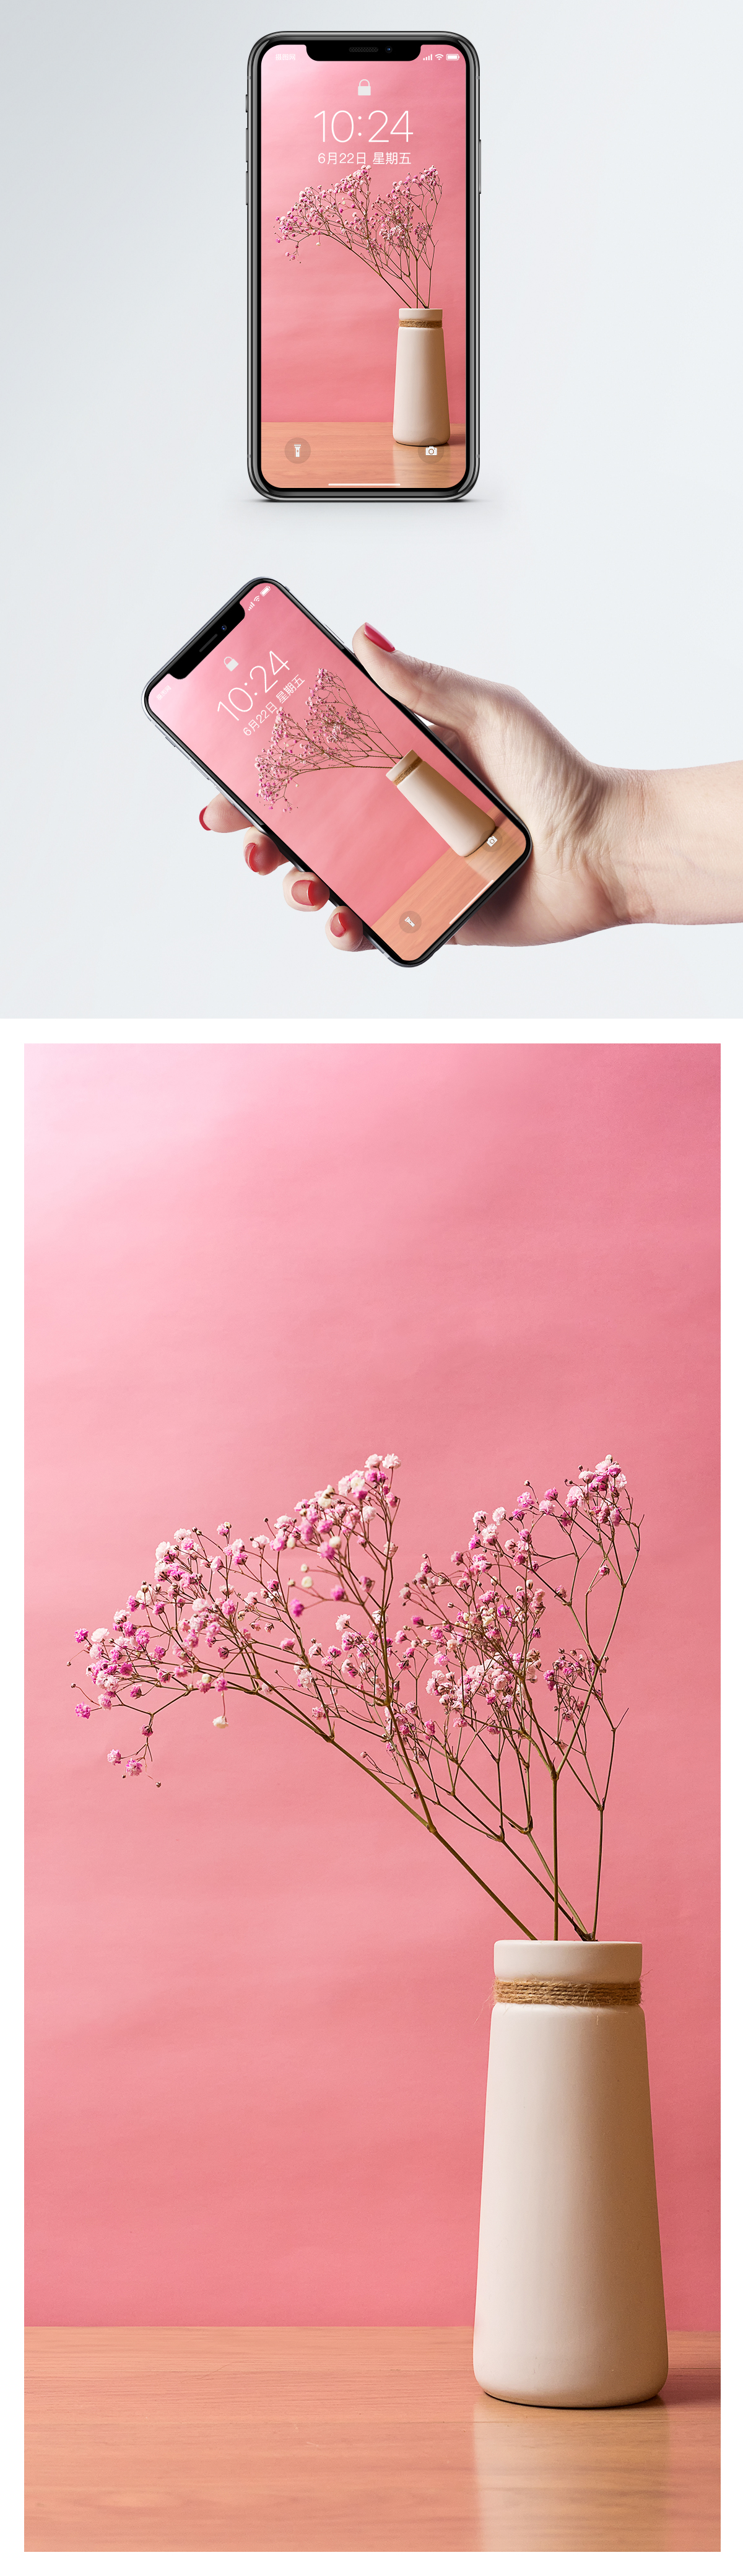 Flower Arranging Mobile Phone Wallpaper Backgrounds Images Free Download Lovepik Com